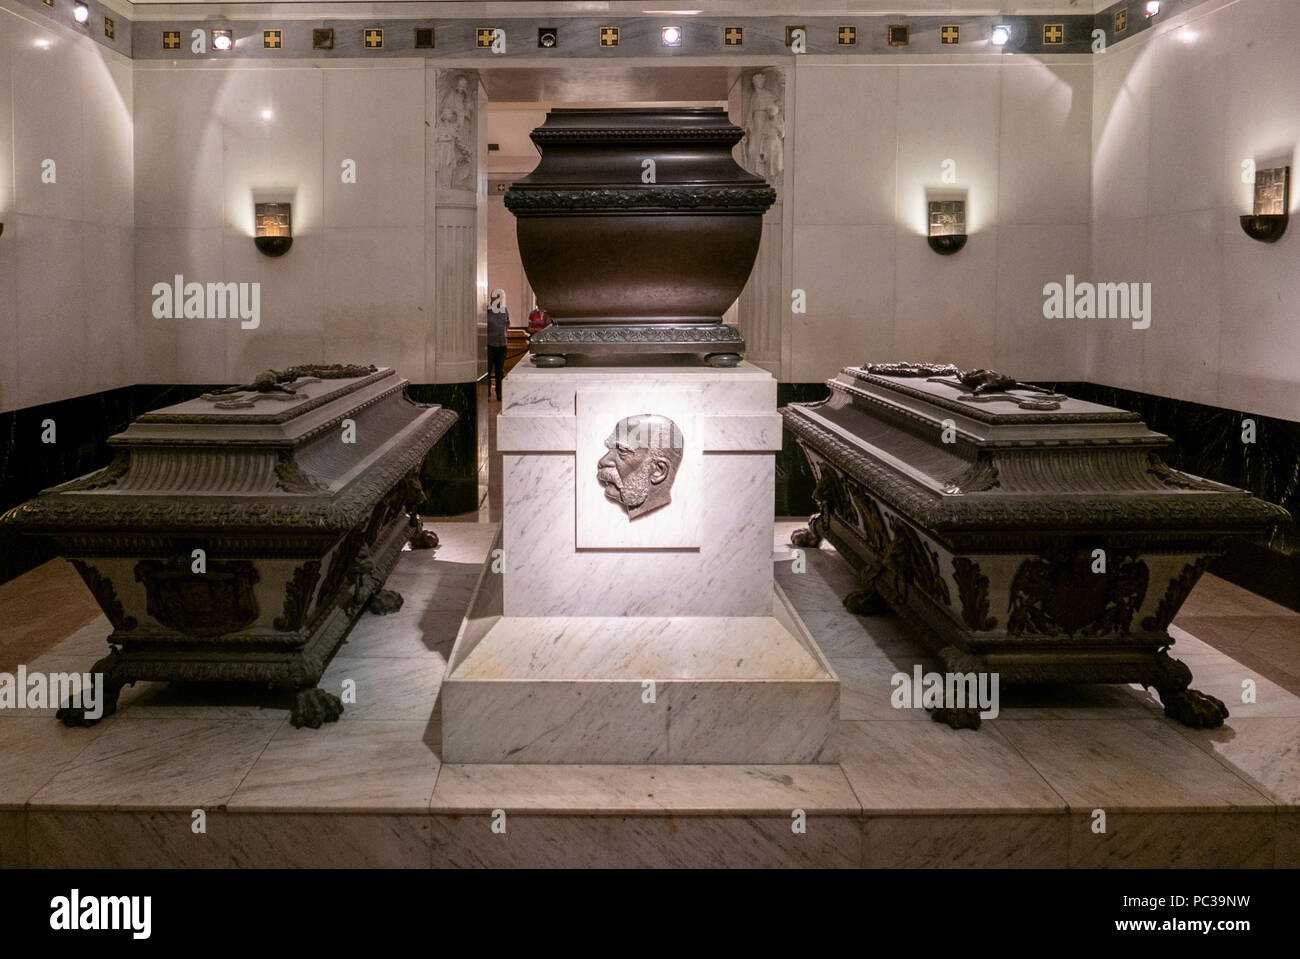 Franz Joseph(center)Vault. Since 1633, the Imperial Crypt has been the principal place of entombment for members of the House of Habsburg - Stock Image